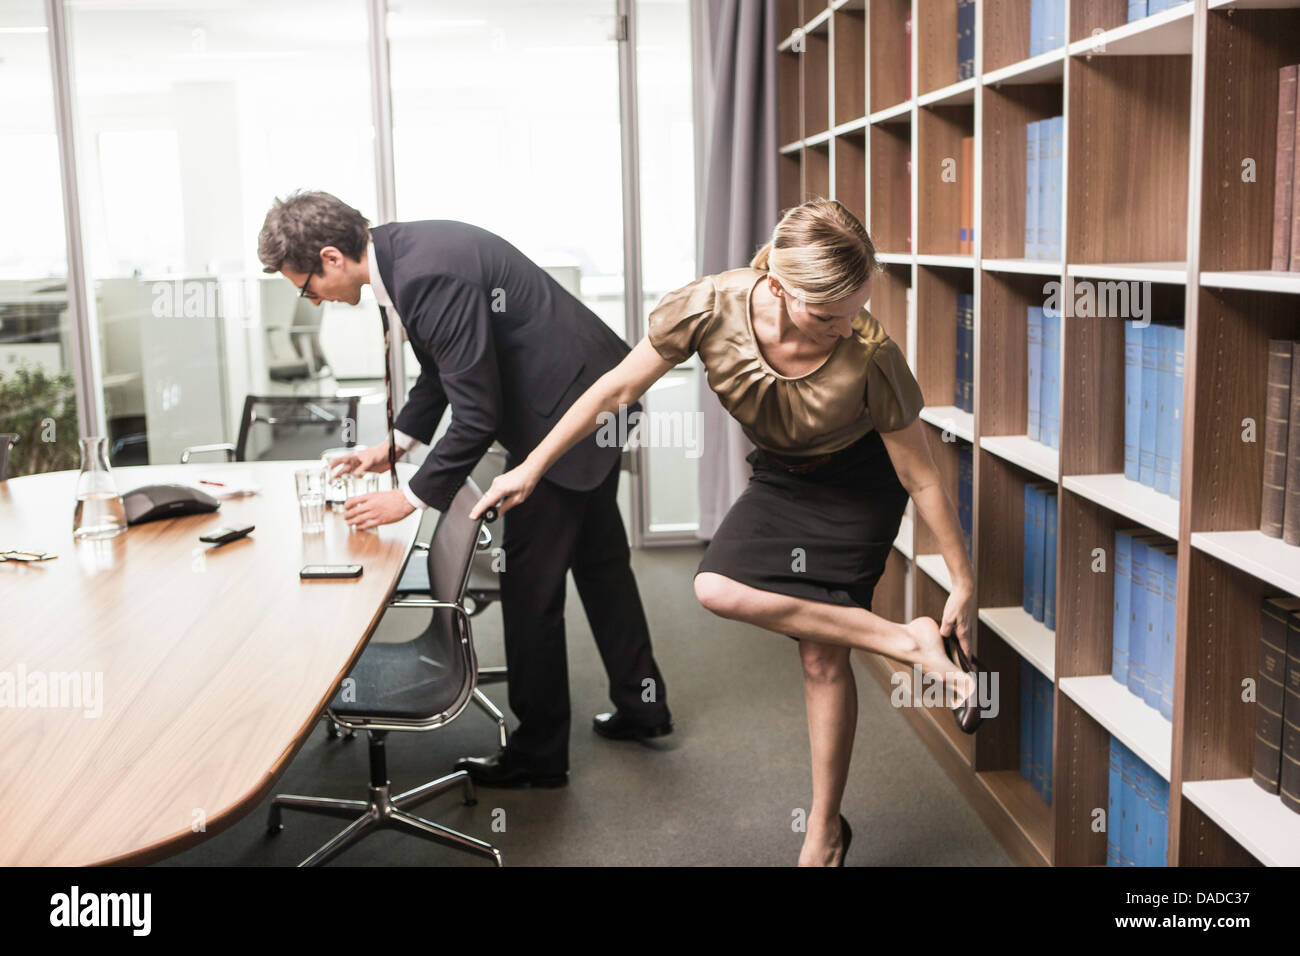 How to Describe Posture | Now Novel |For Man Woman Leaning Forward